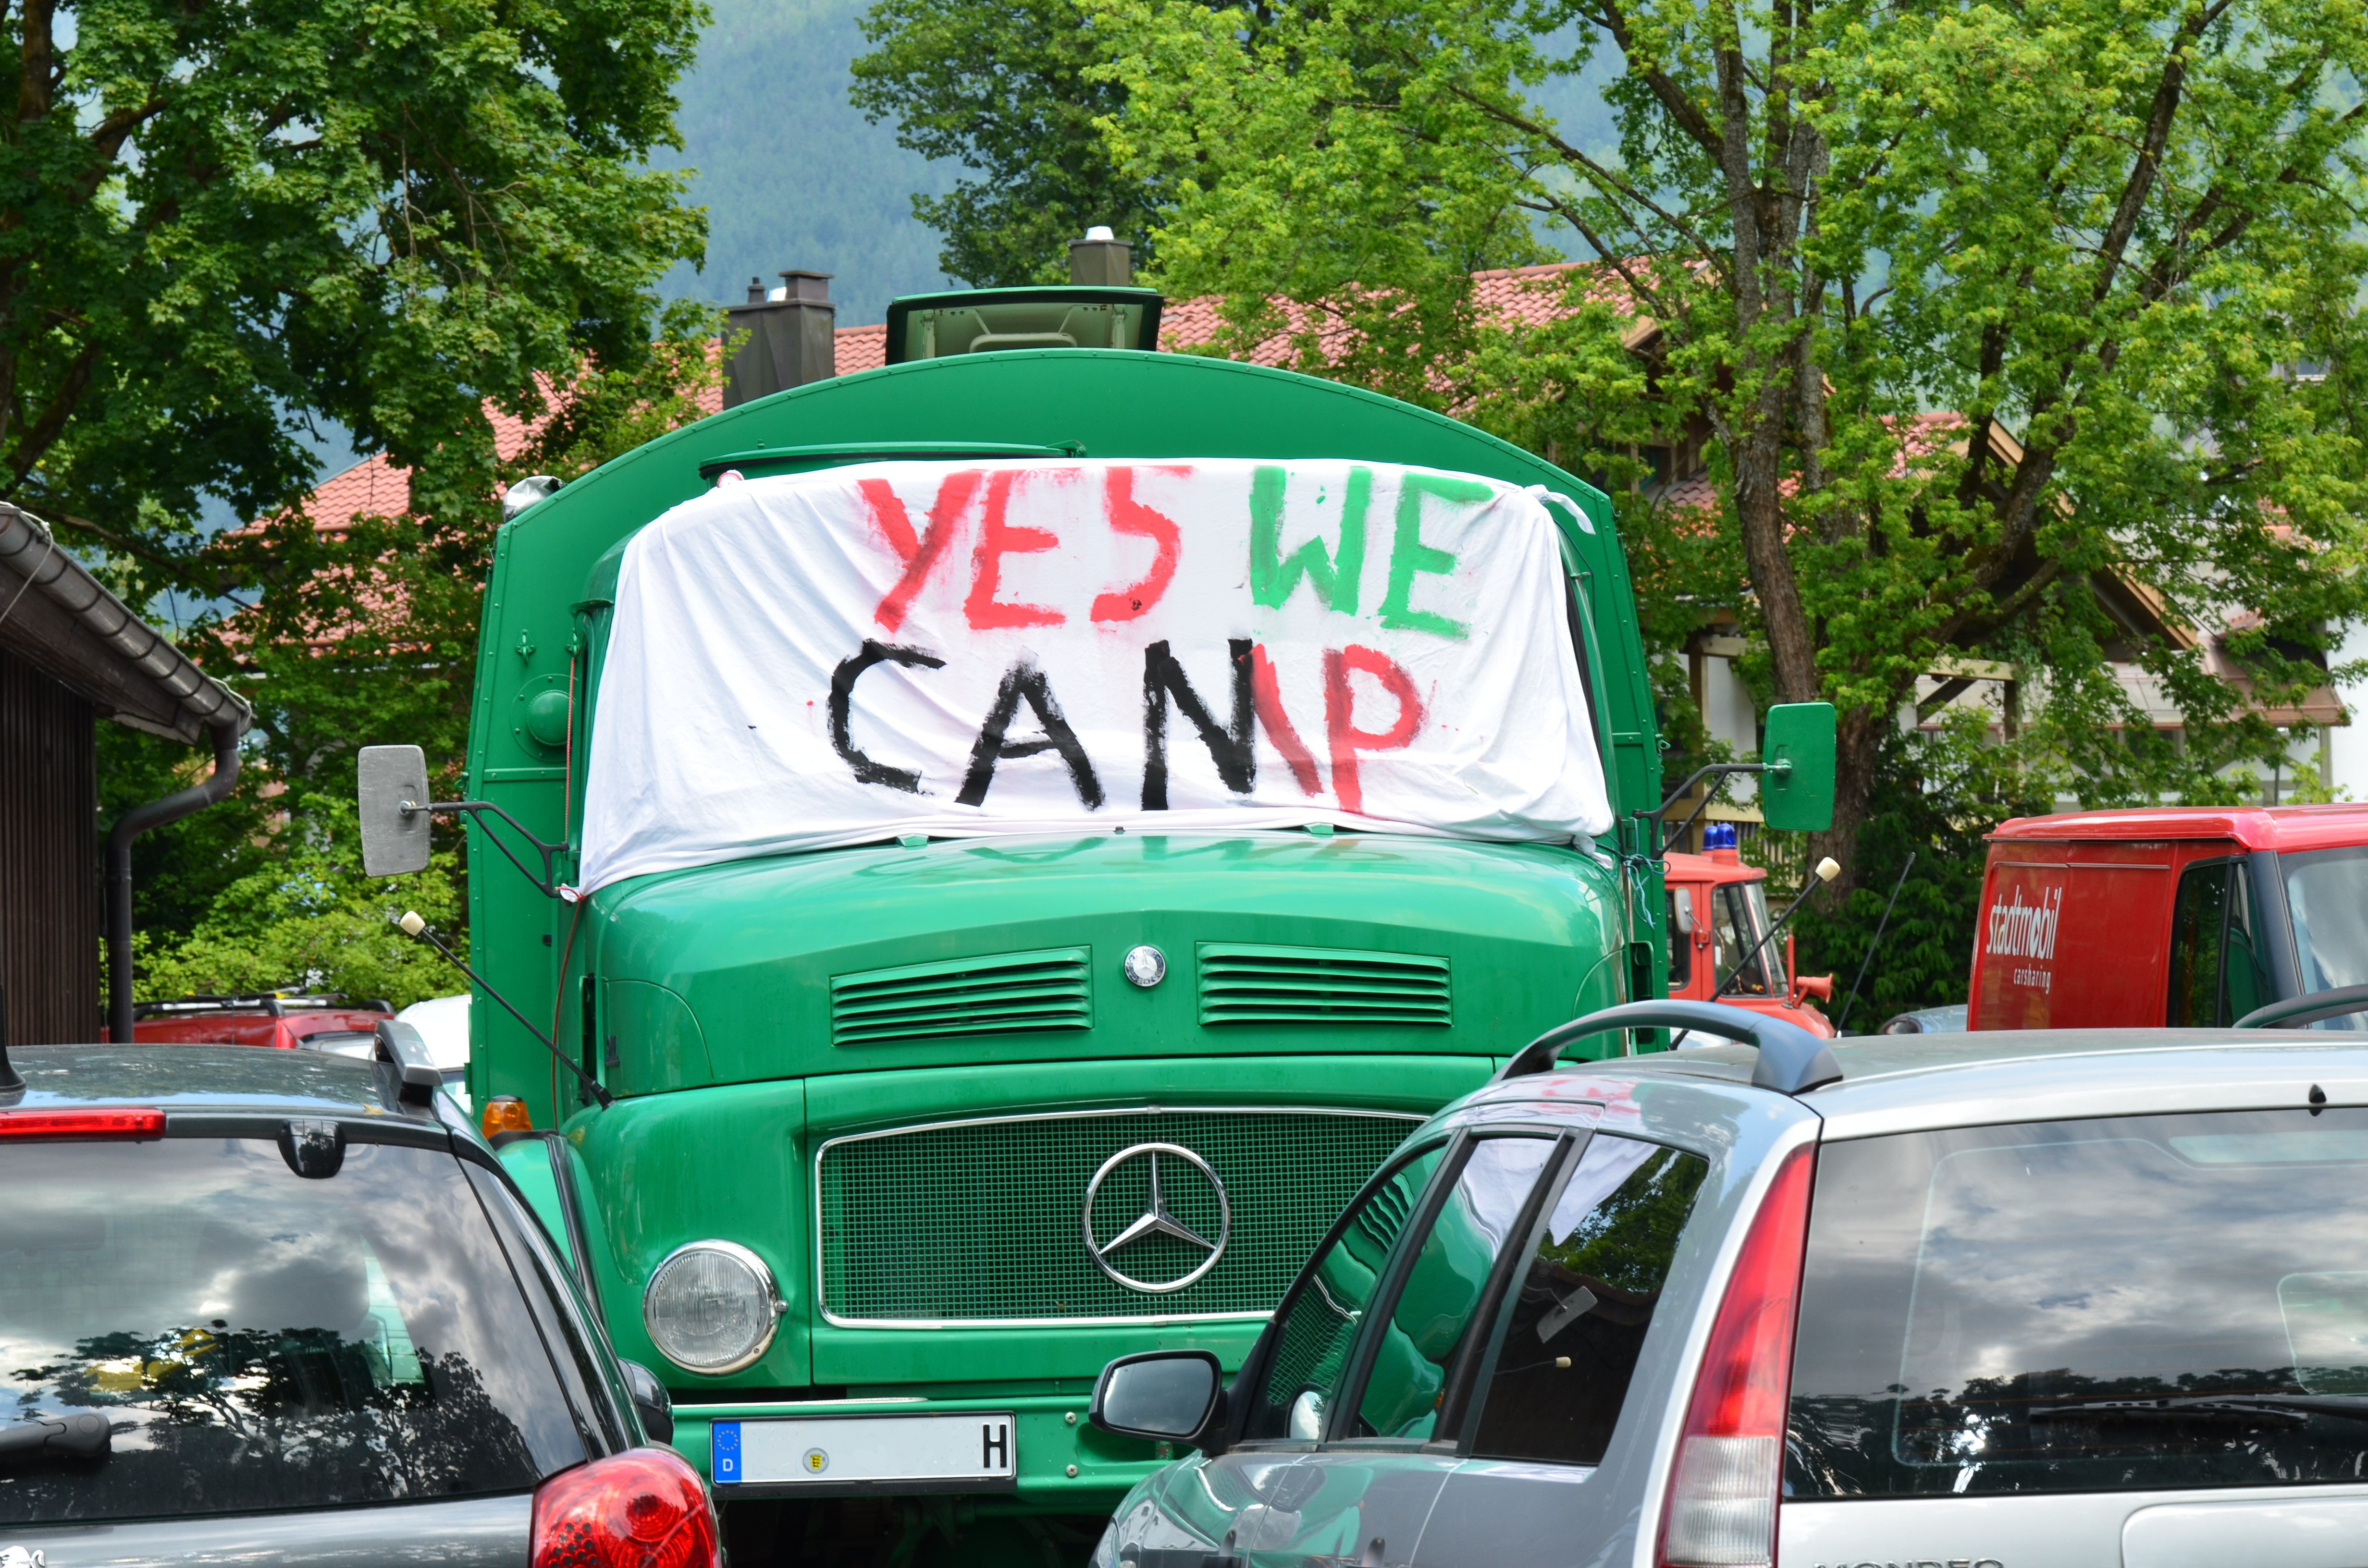 Yes we camp - Protestcamp zum G7-Gipfel | CC BY 4.0 Michael Renner